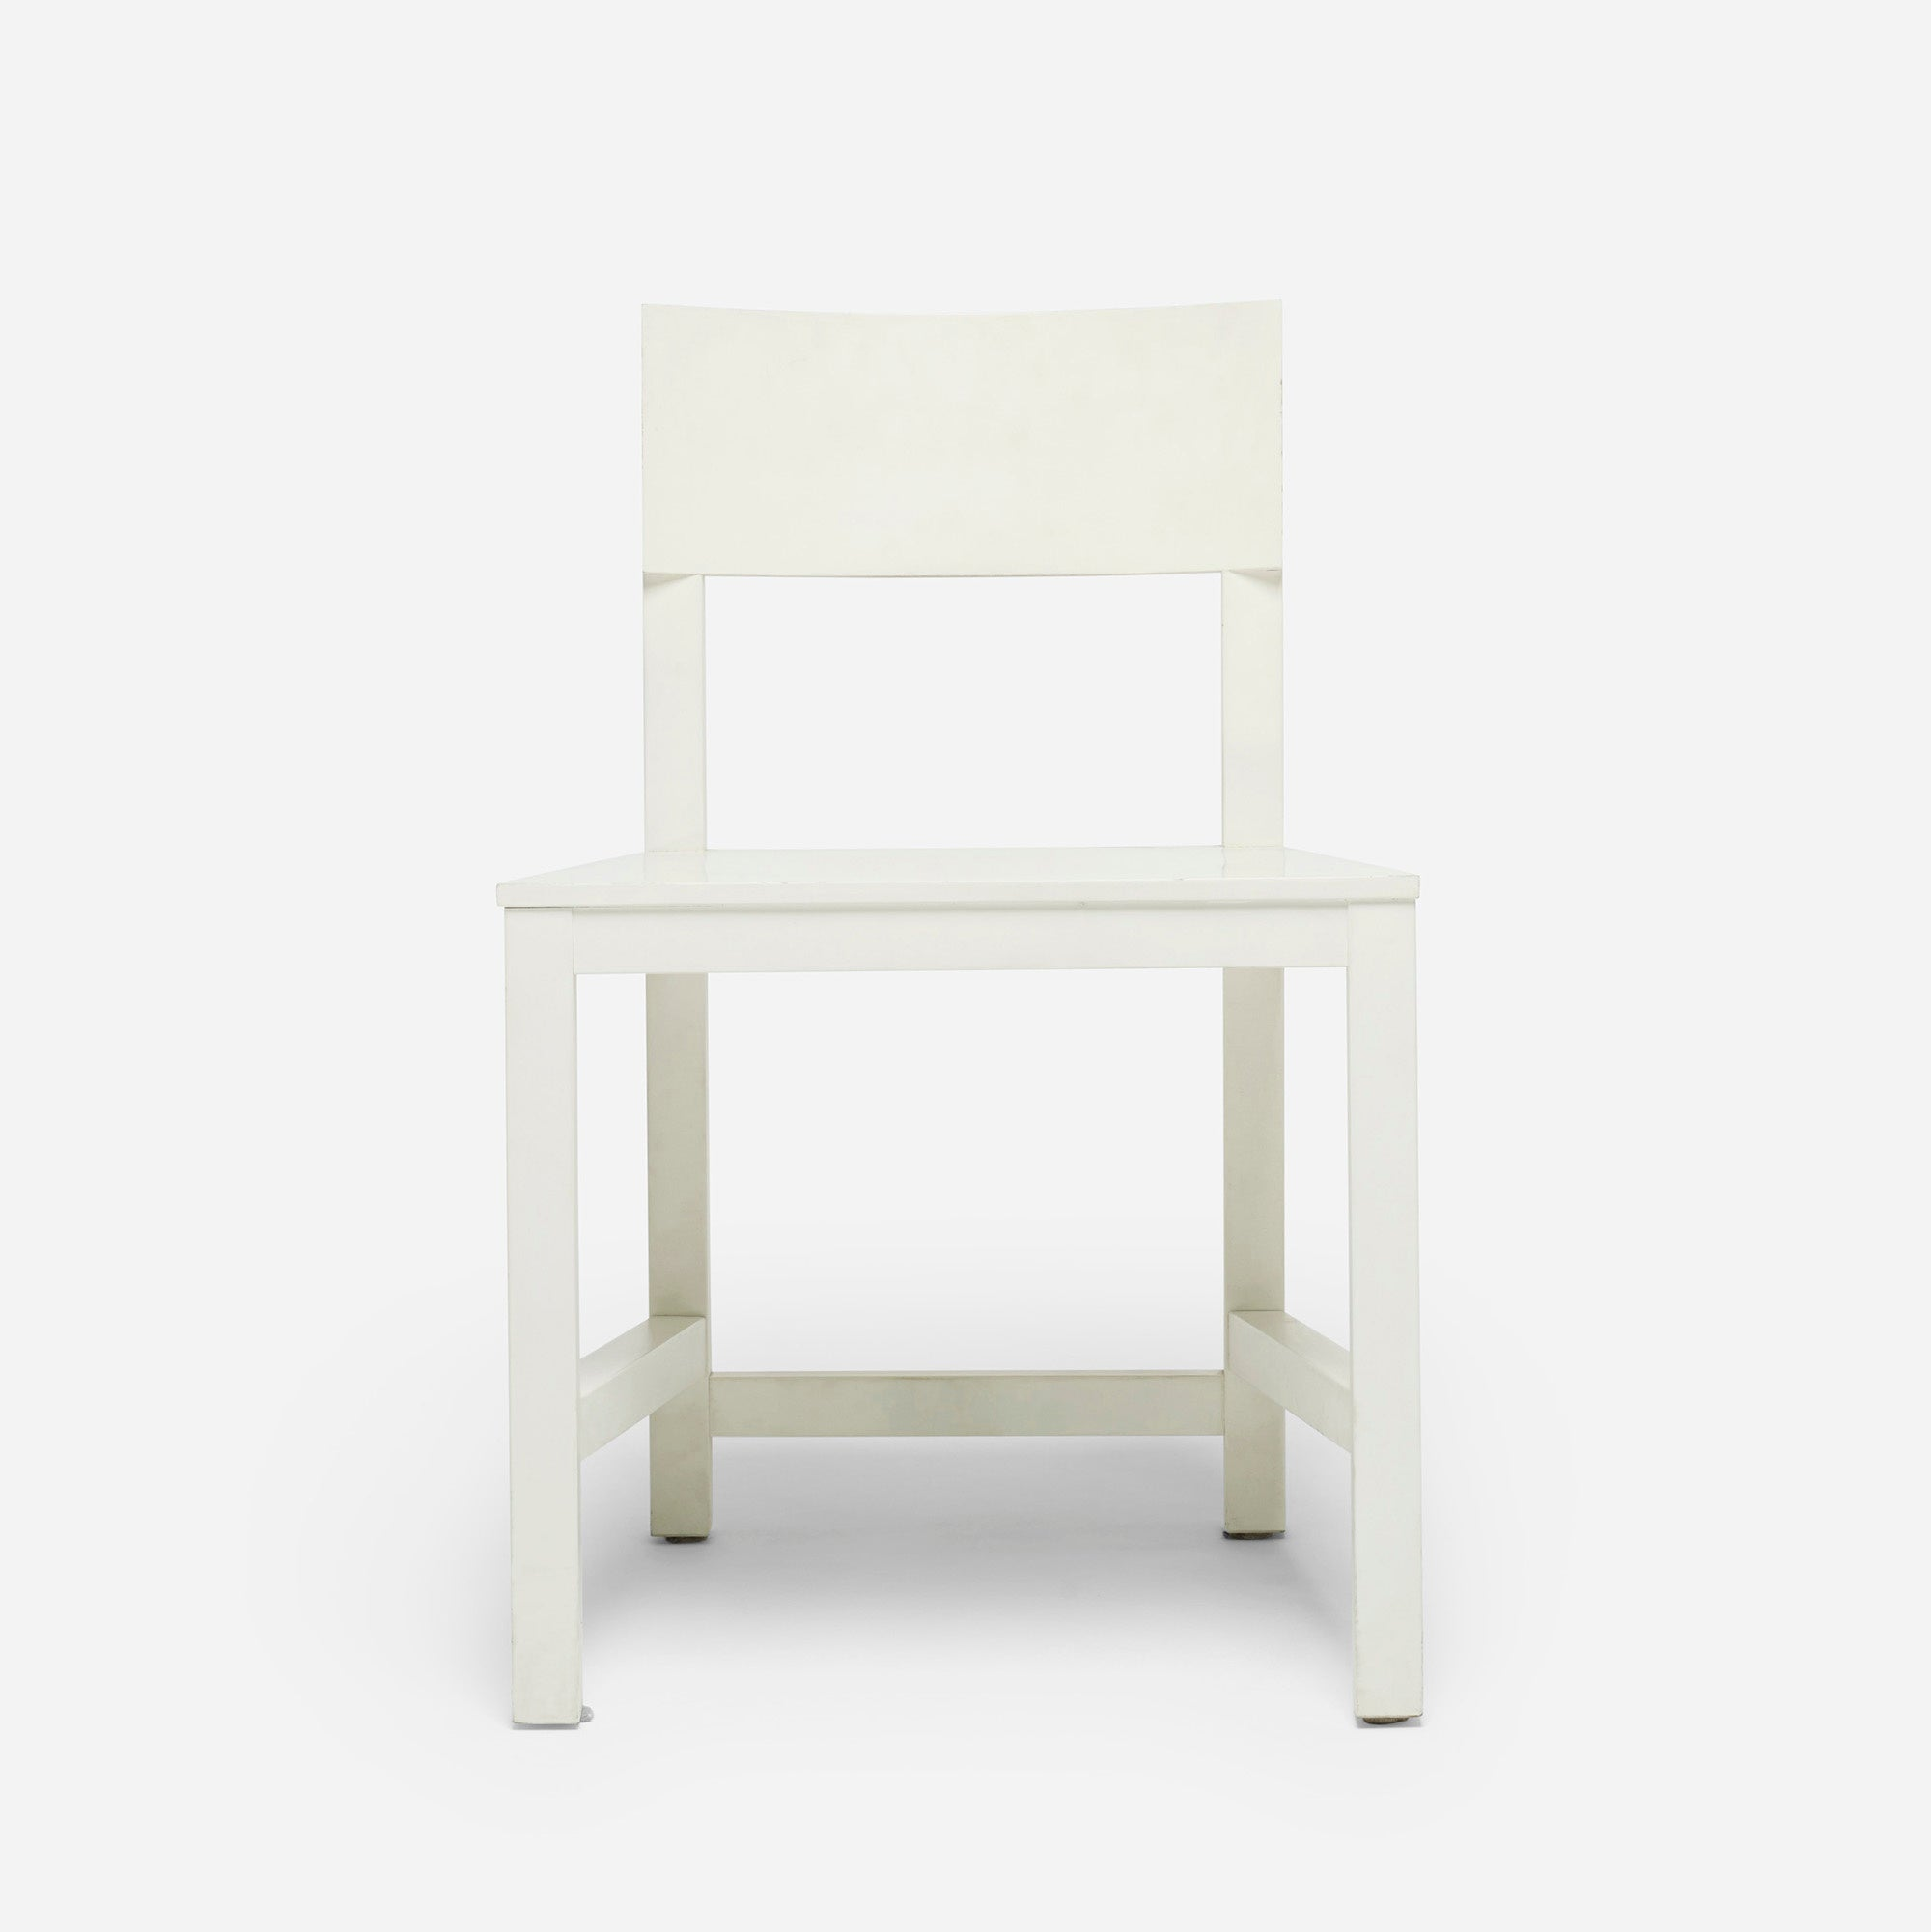 Tweedehands design AVL shaker chair